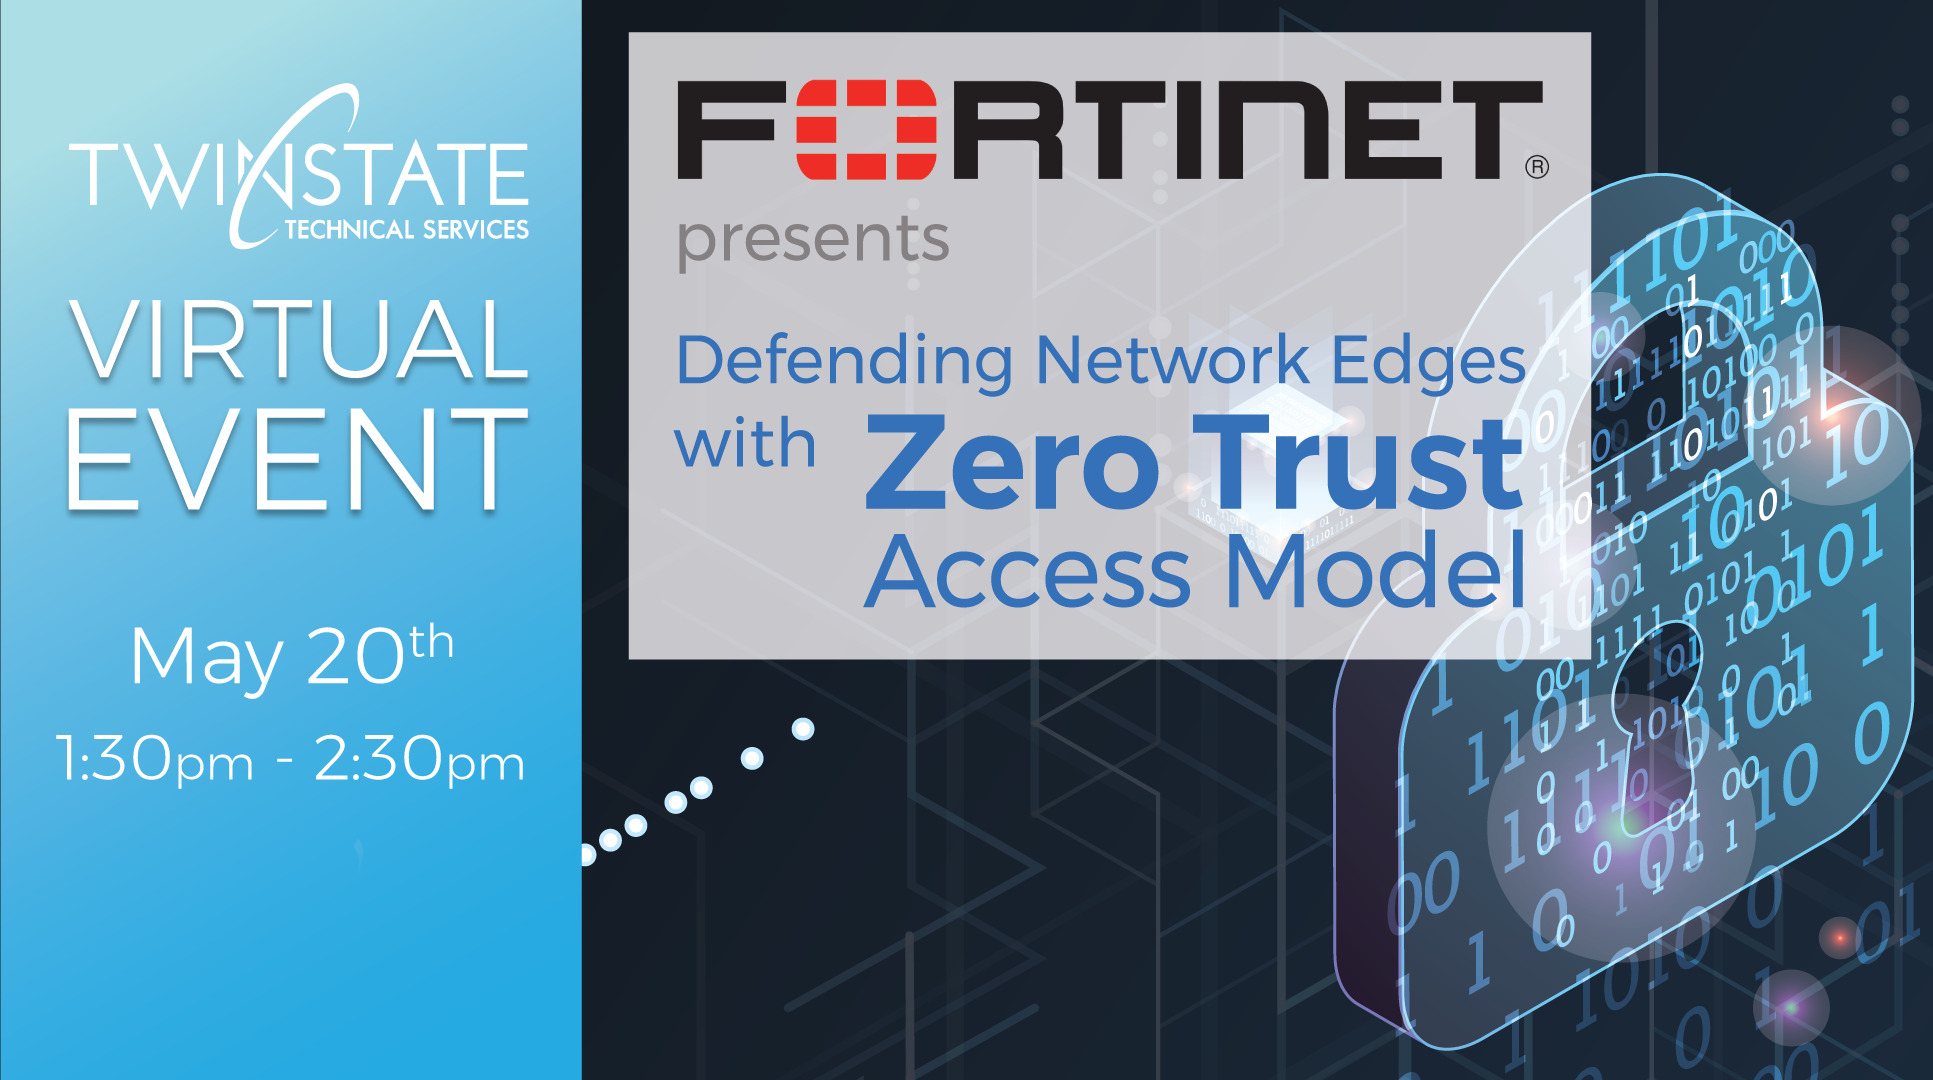 Banner Image for Fortinet Event